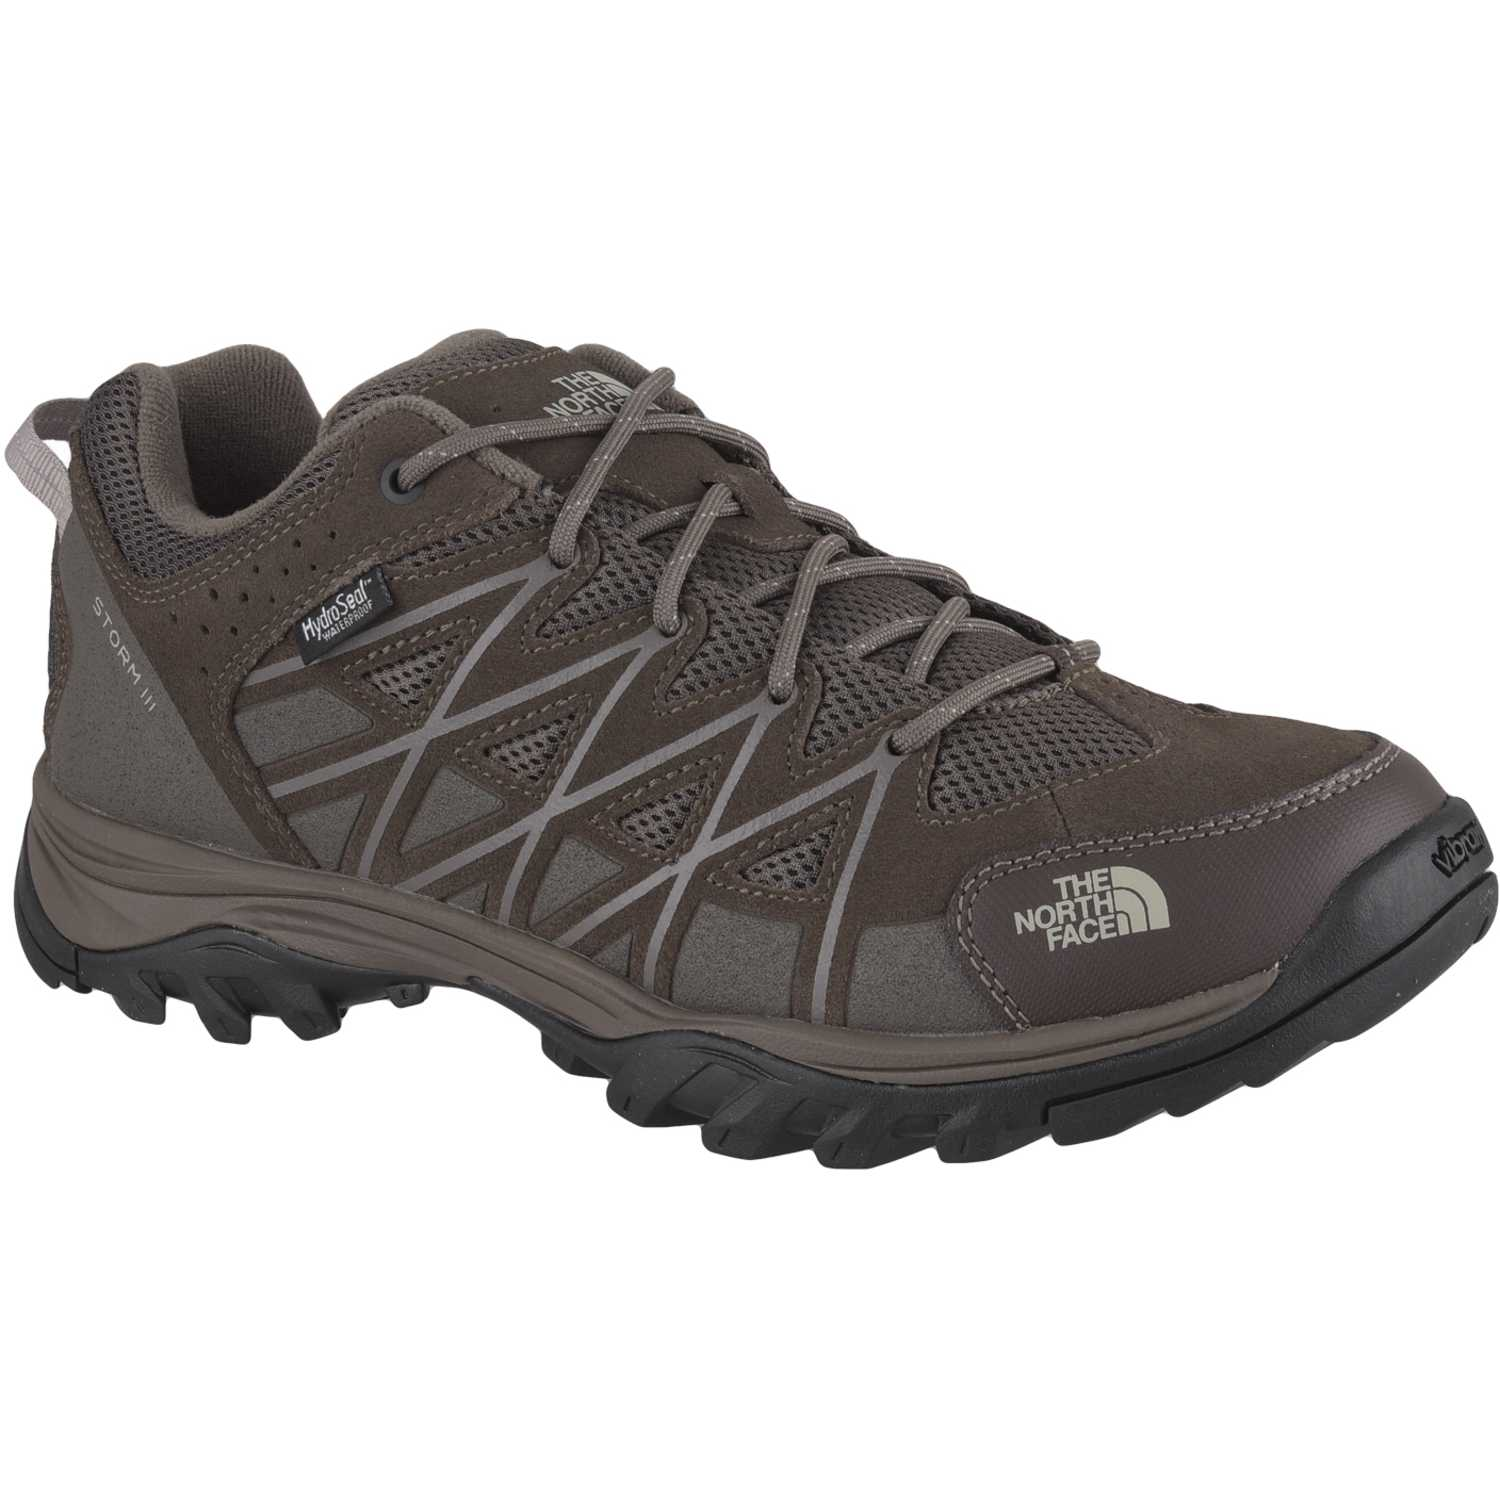 The North Face m storm iii wp MARRON / GRIS Calzado hiking